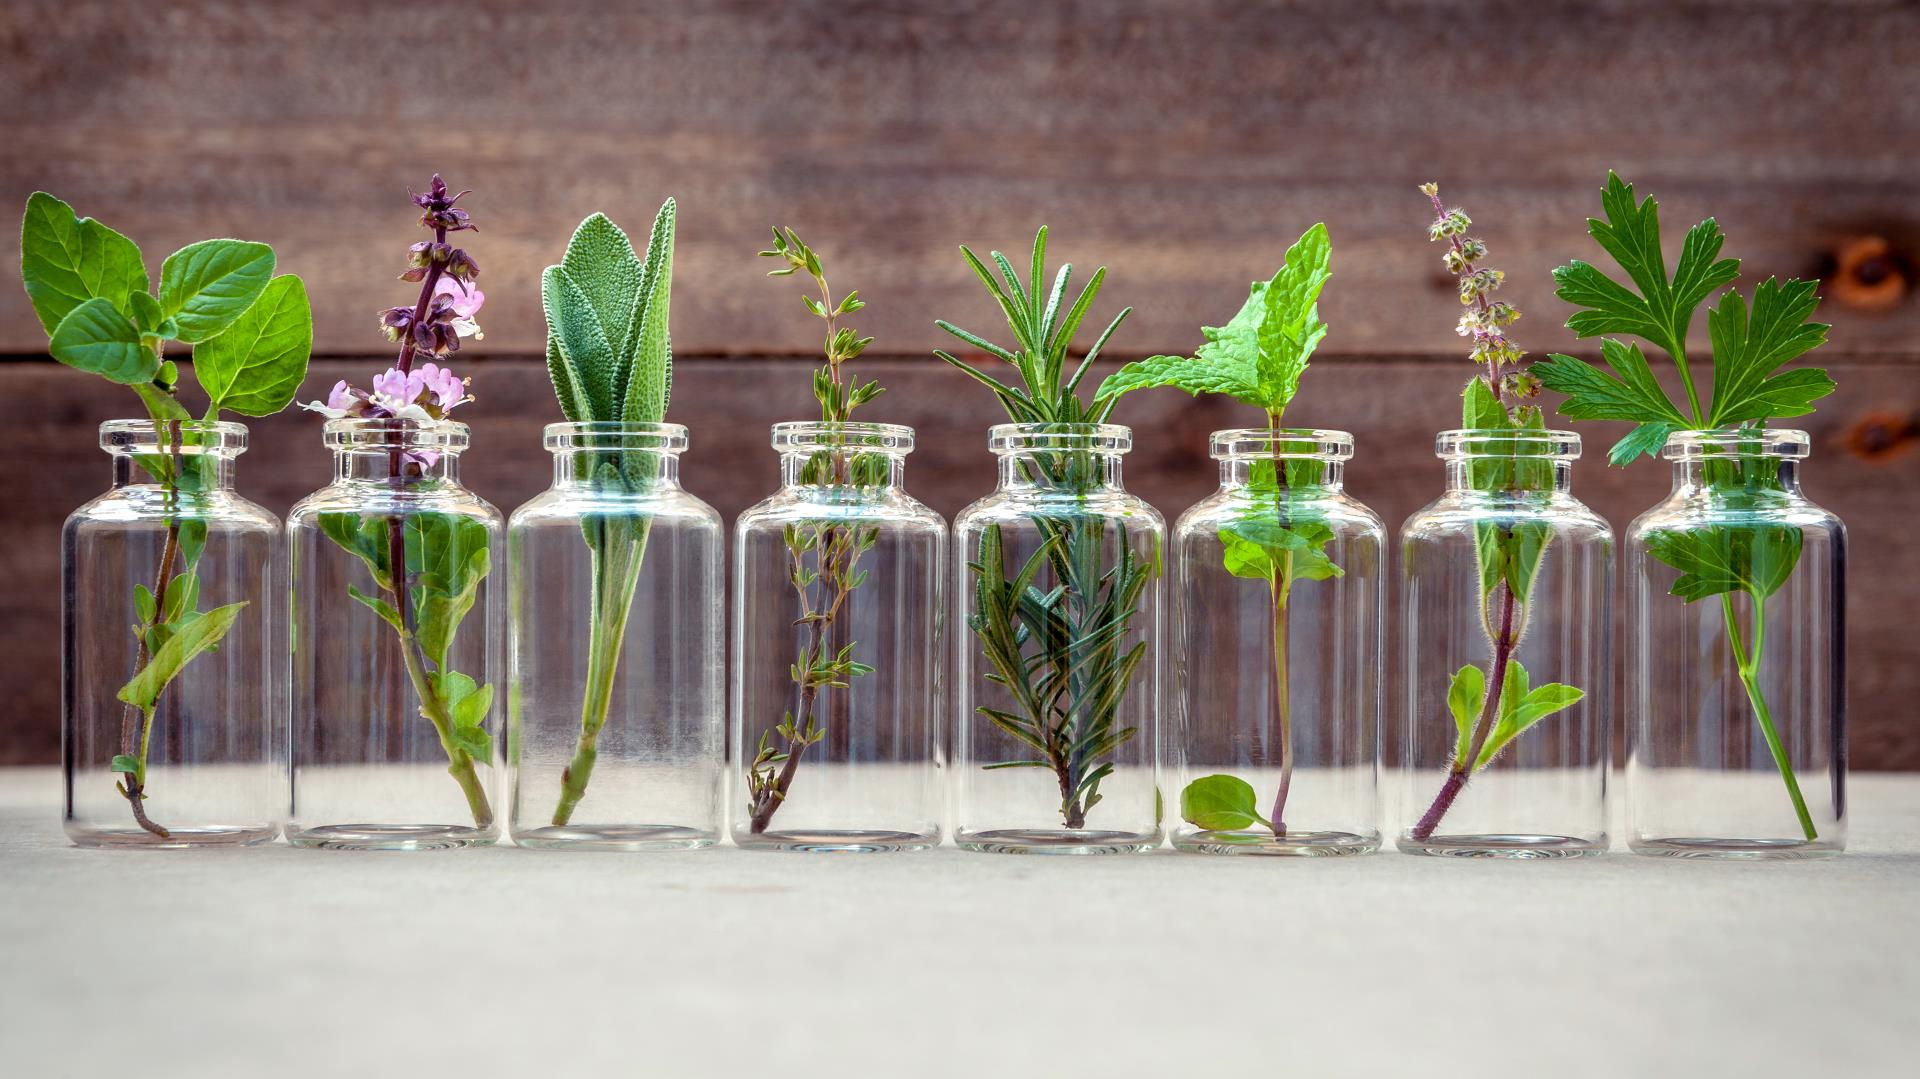 Essential oils for health and wellness